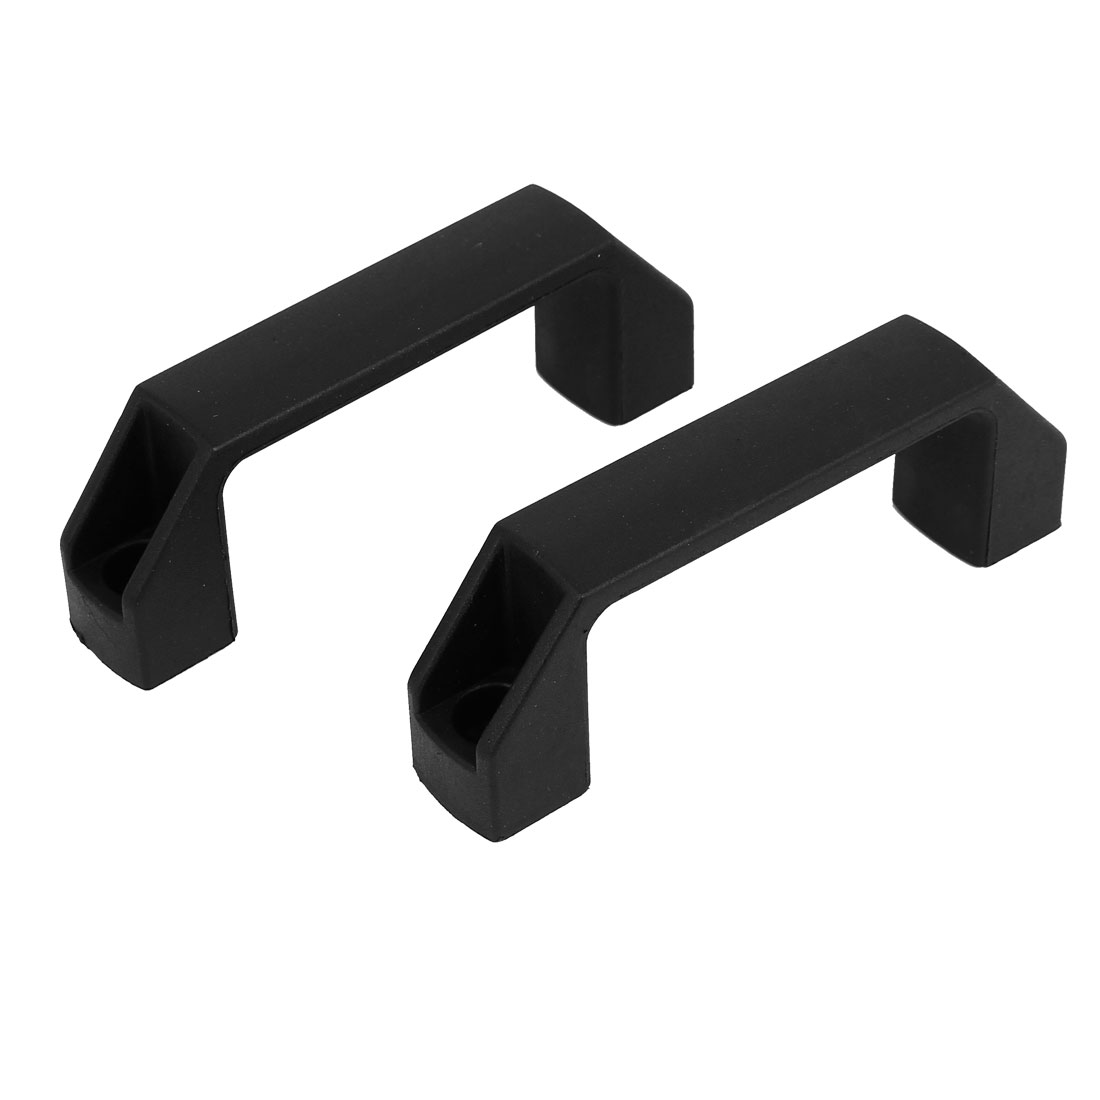 Unique Bargains Cabinet Gate Door Plastic Pull Handles Black 90mm Hole Ing 8pcs